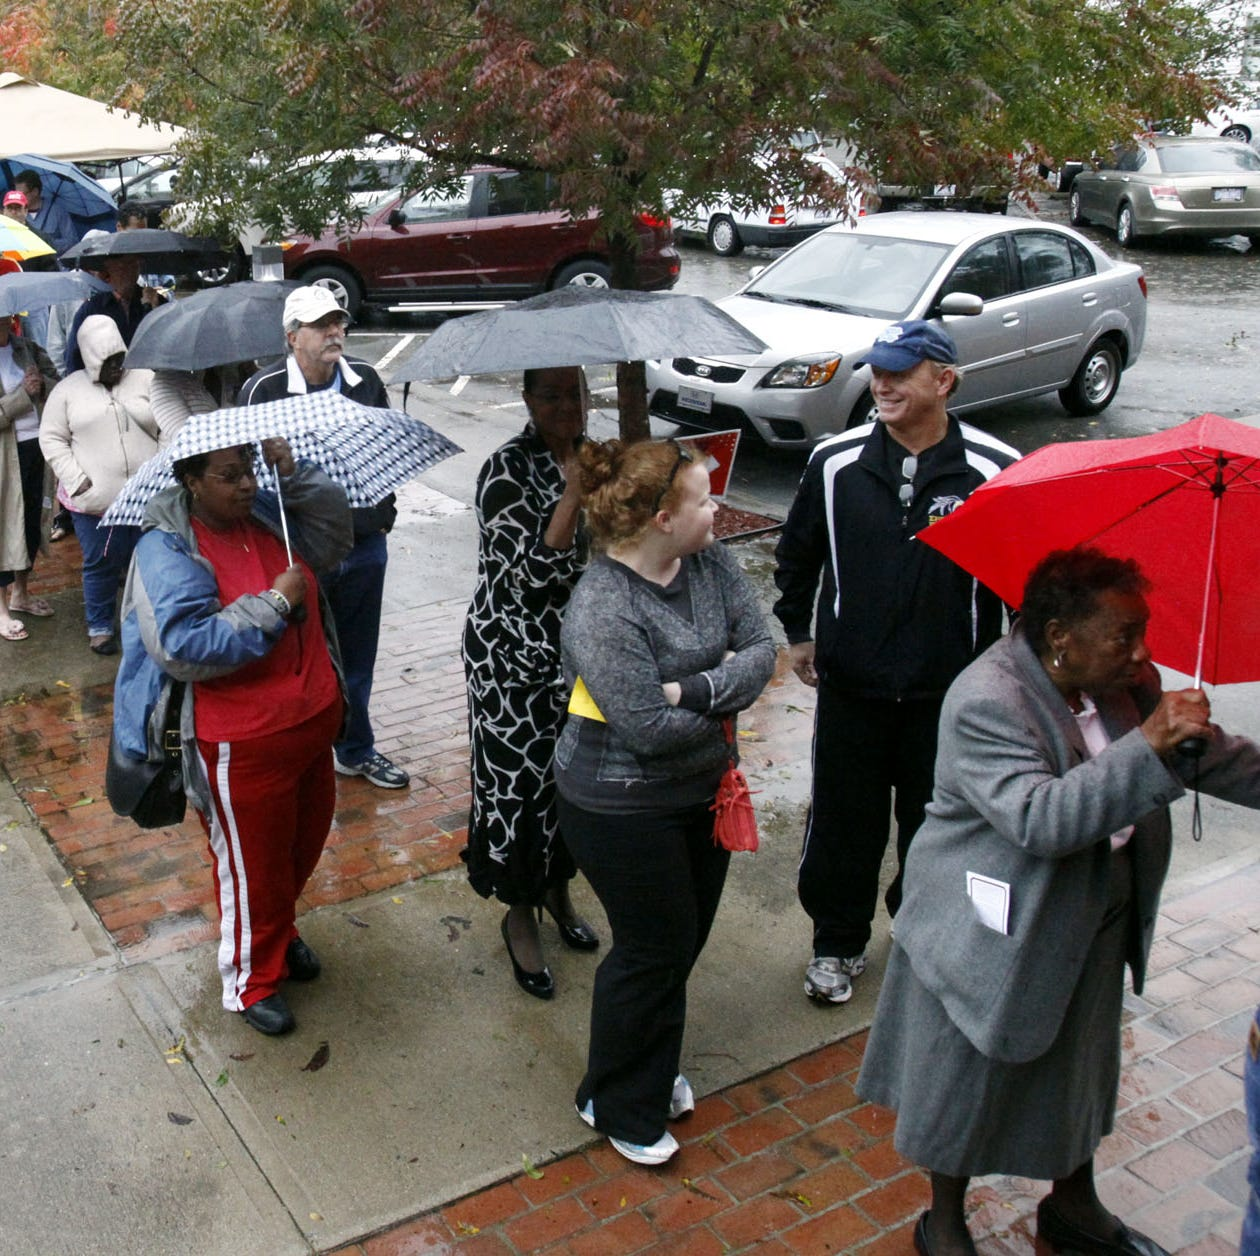 Voters wait in line despite rains from Hurricane Sandy to vote on the last early voting Sunday before Election Day, in New Bern, N.C., on Oct. 28, 2012.  In 2018, a rainy Election Day is expected in the East.